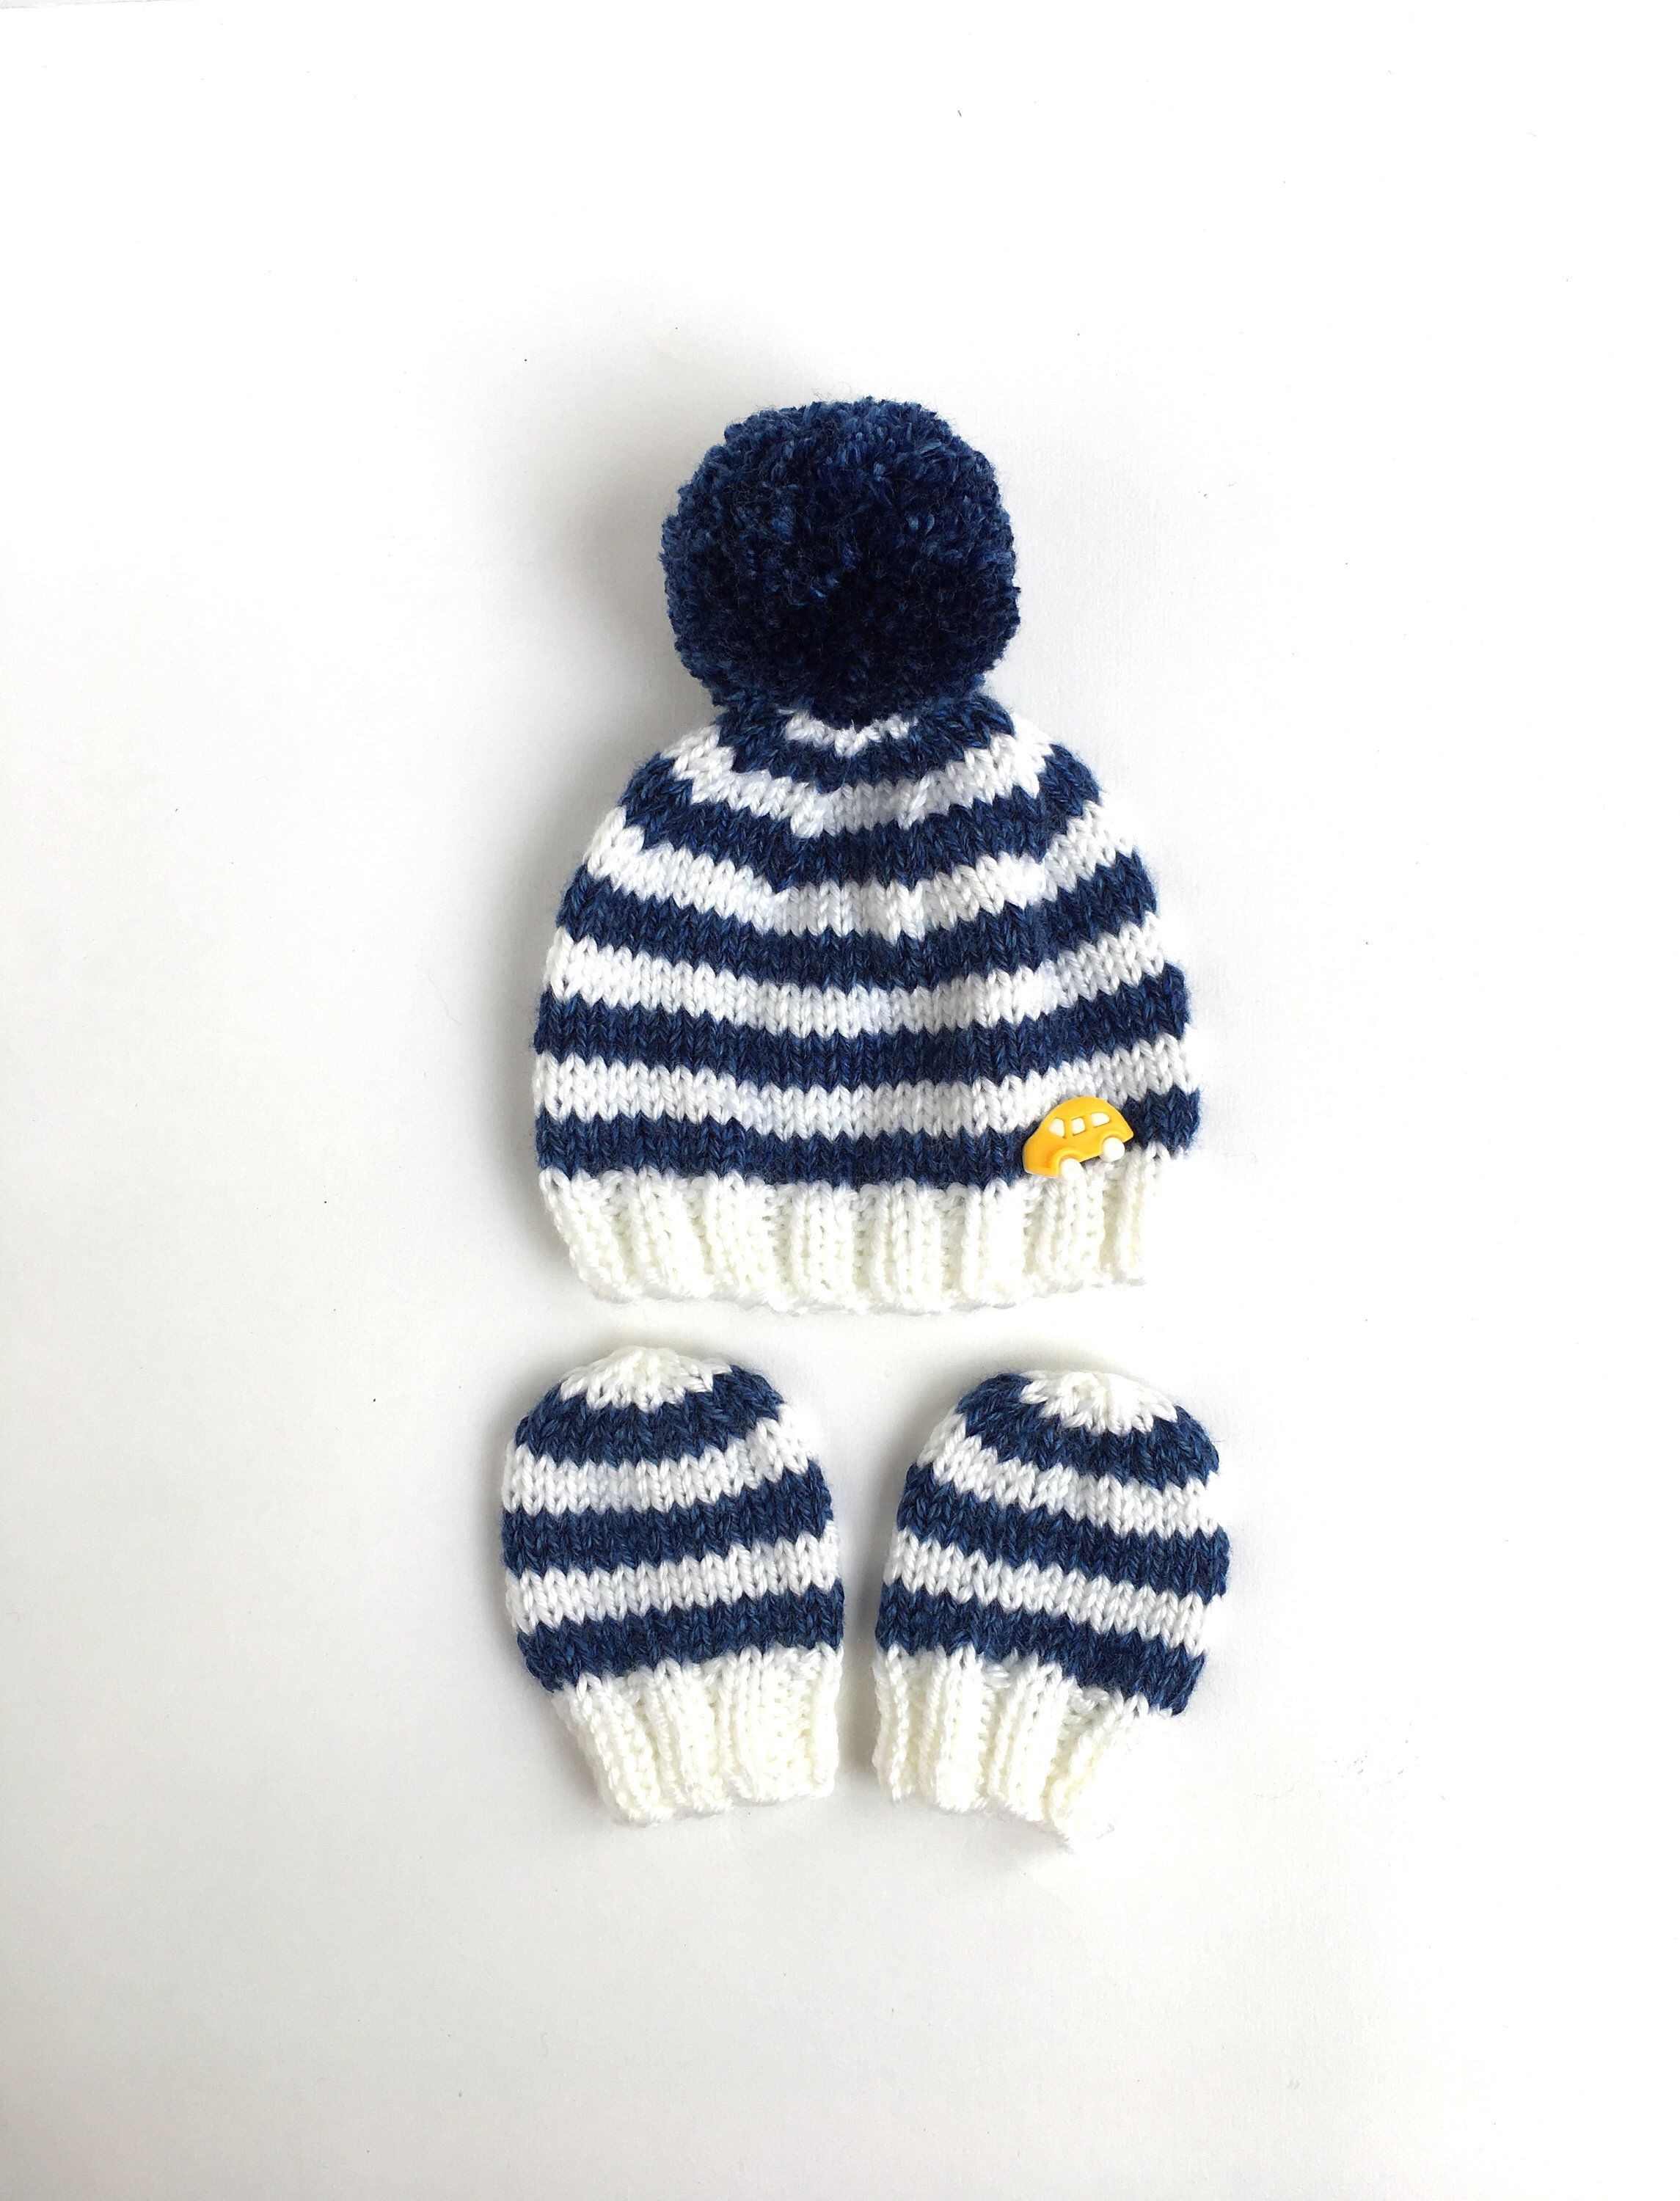 30e6fb8fb2b Striped blue and white baby boy beanie and mittens set with yellow car  button   knitted winter newborn beanie with mittens